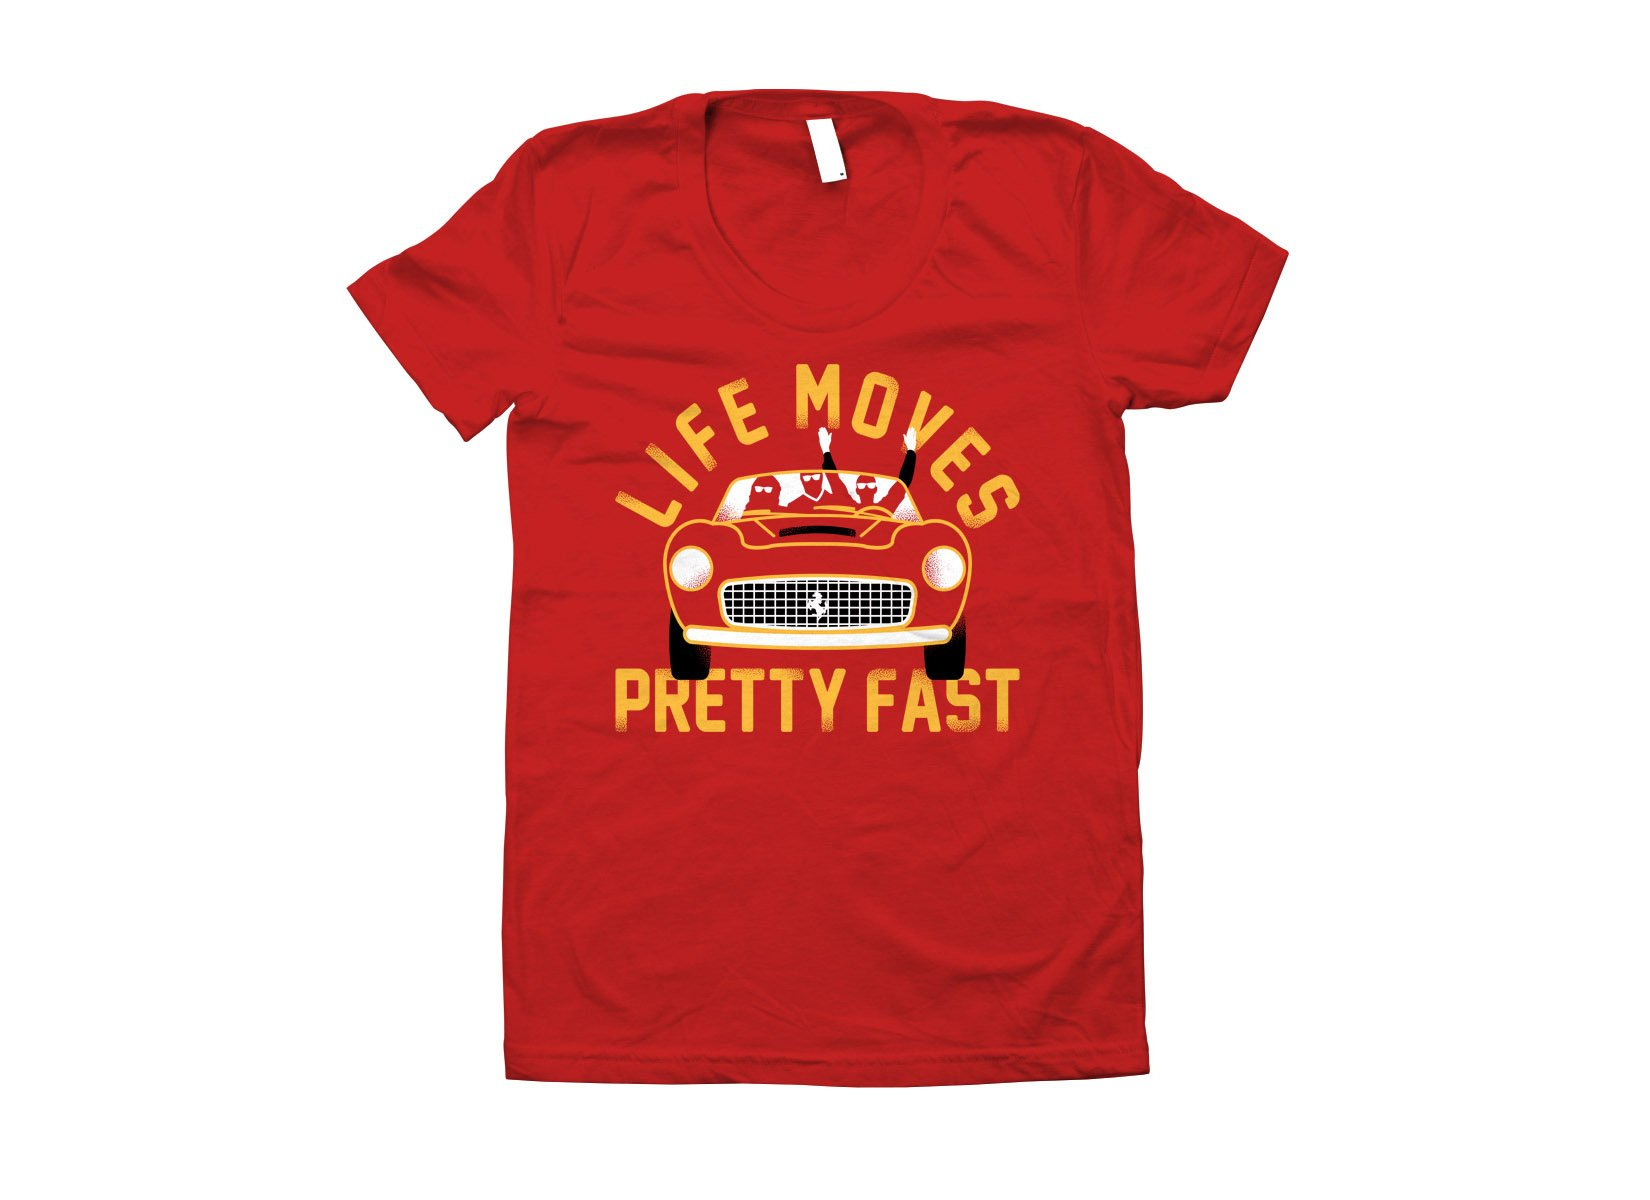 Life Moves Pretty Fast on Juniors T-Shirt